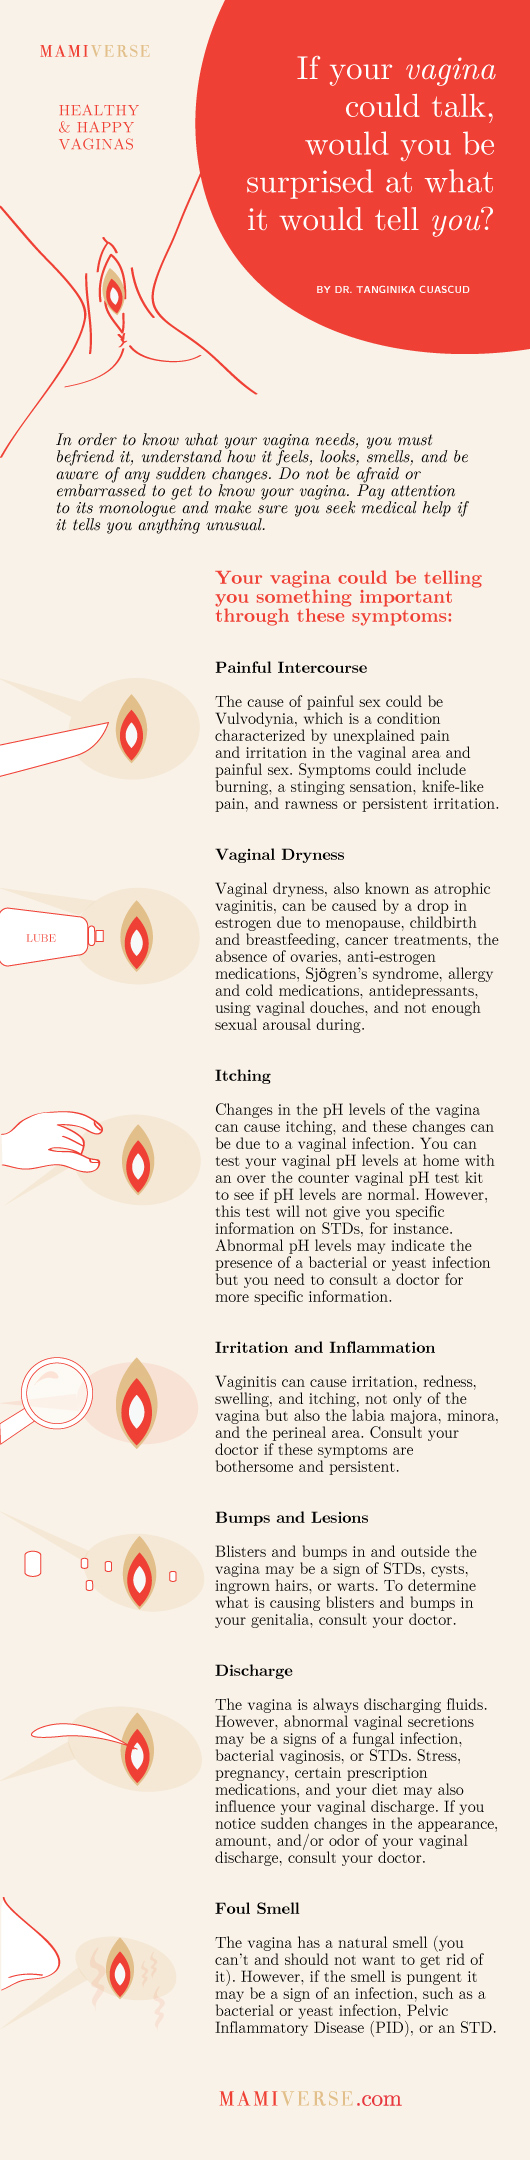 Women's Health The Art of a Happy Vagina-Infographic